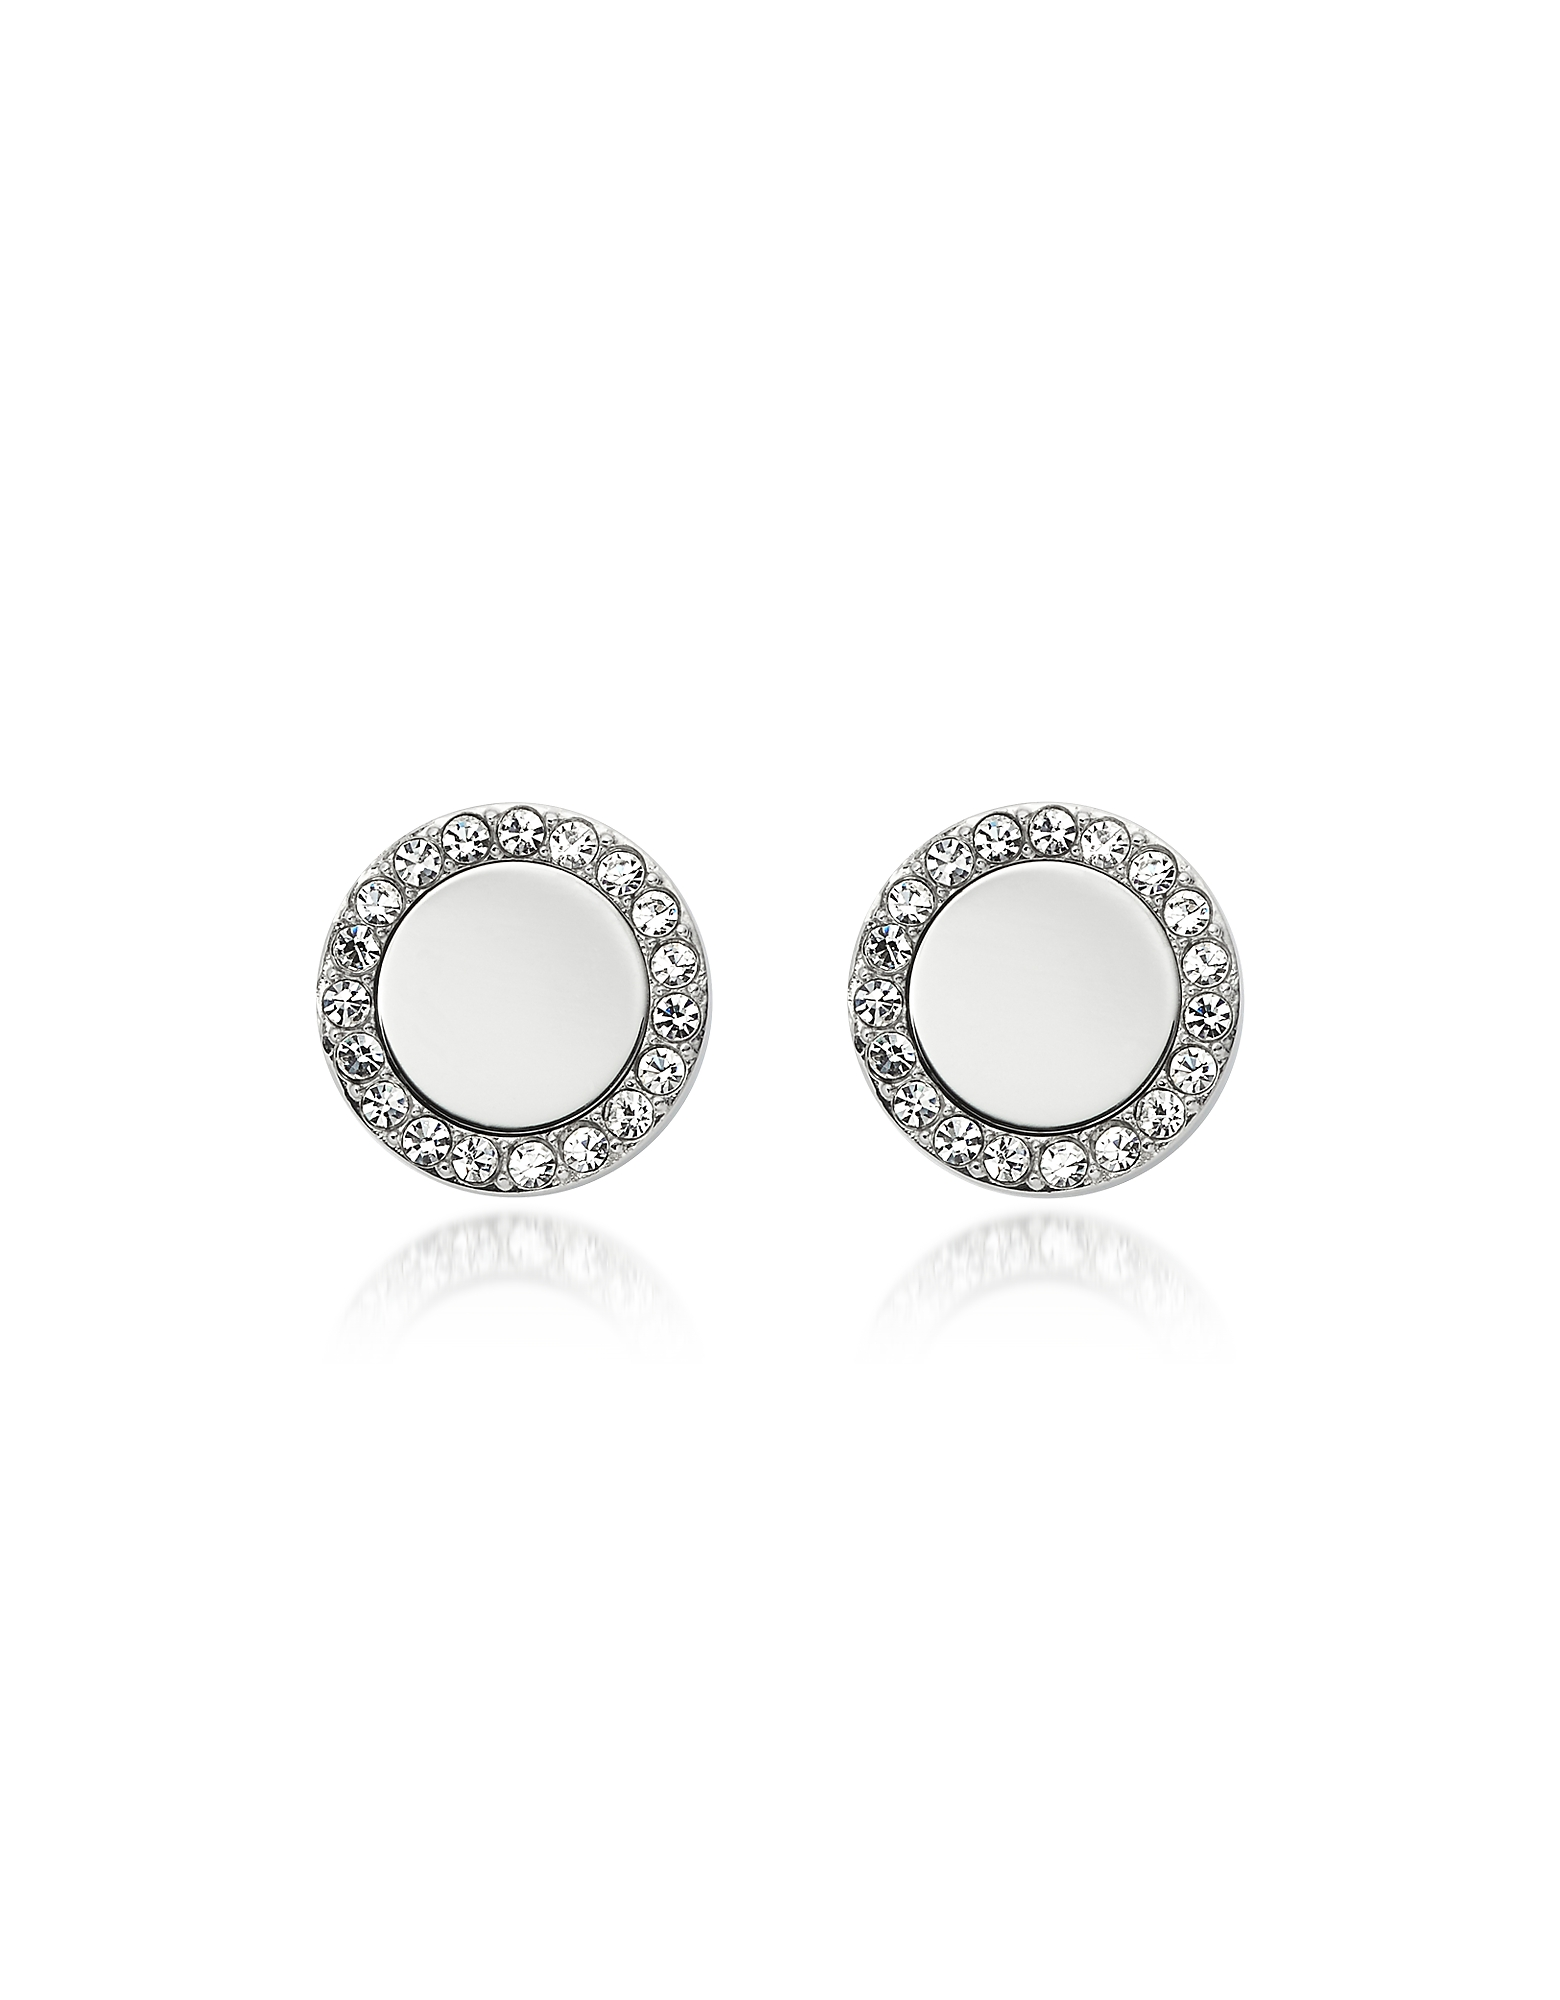 Glitz Stainless Steel Women's Stud Earrings, Silver